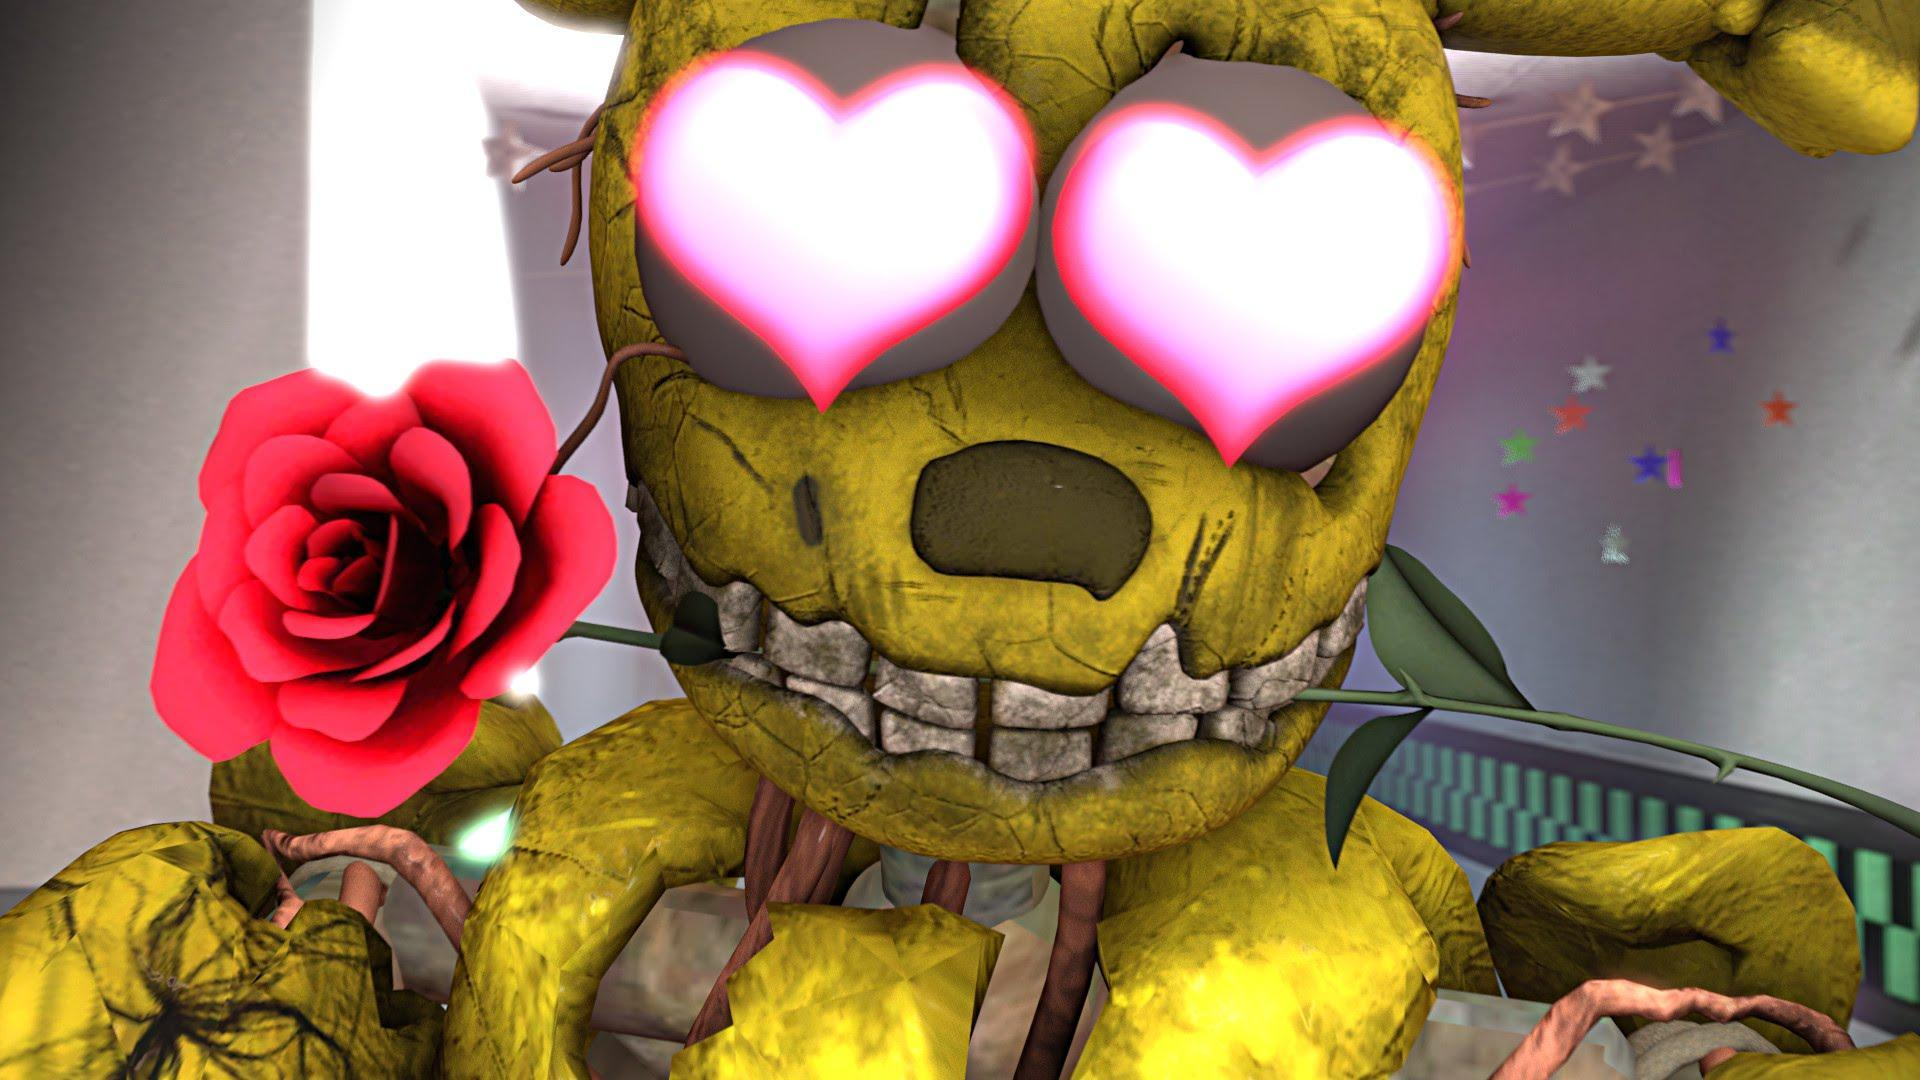 At the sfm Sample Story. FnaF world Mangle make Toy Chica in love with??